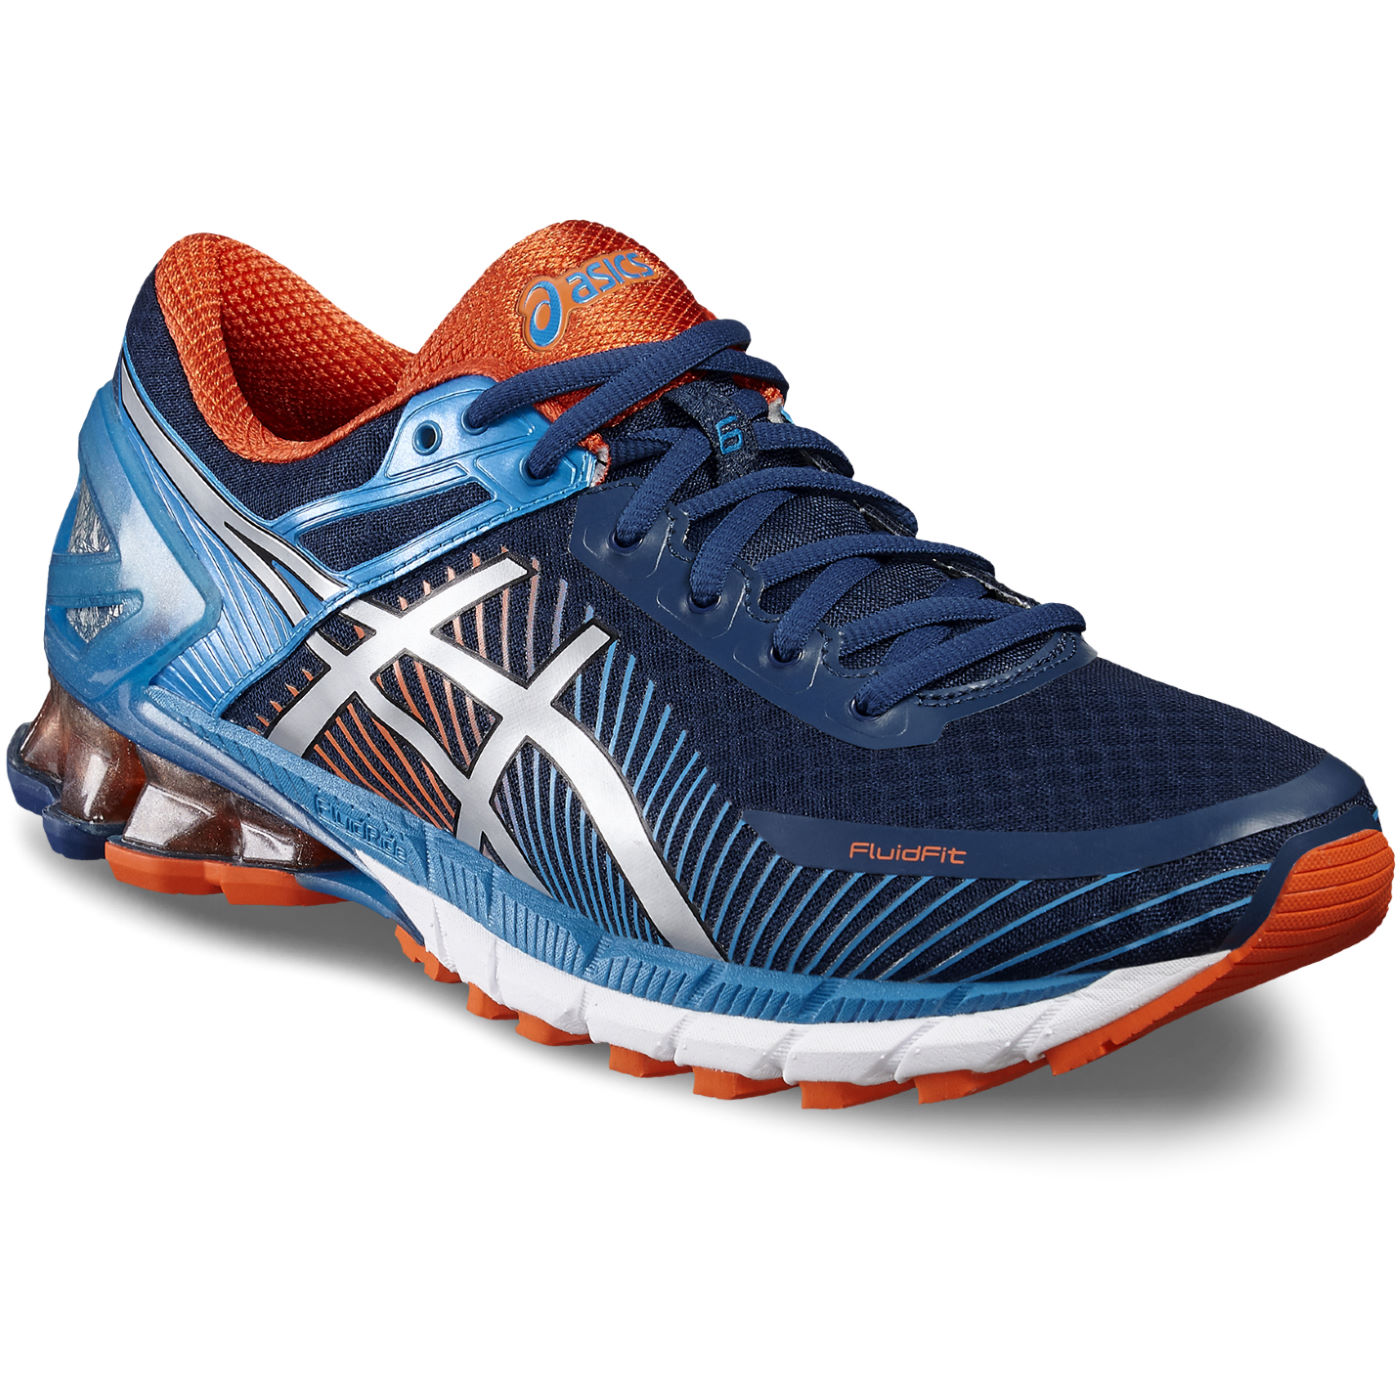 wiggle asics gel kinsei 6 shoes aw16 cushion running shoes. Black Bedroom Furniture Sets. Home Design Ideas